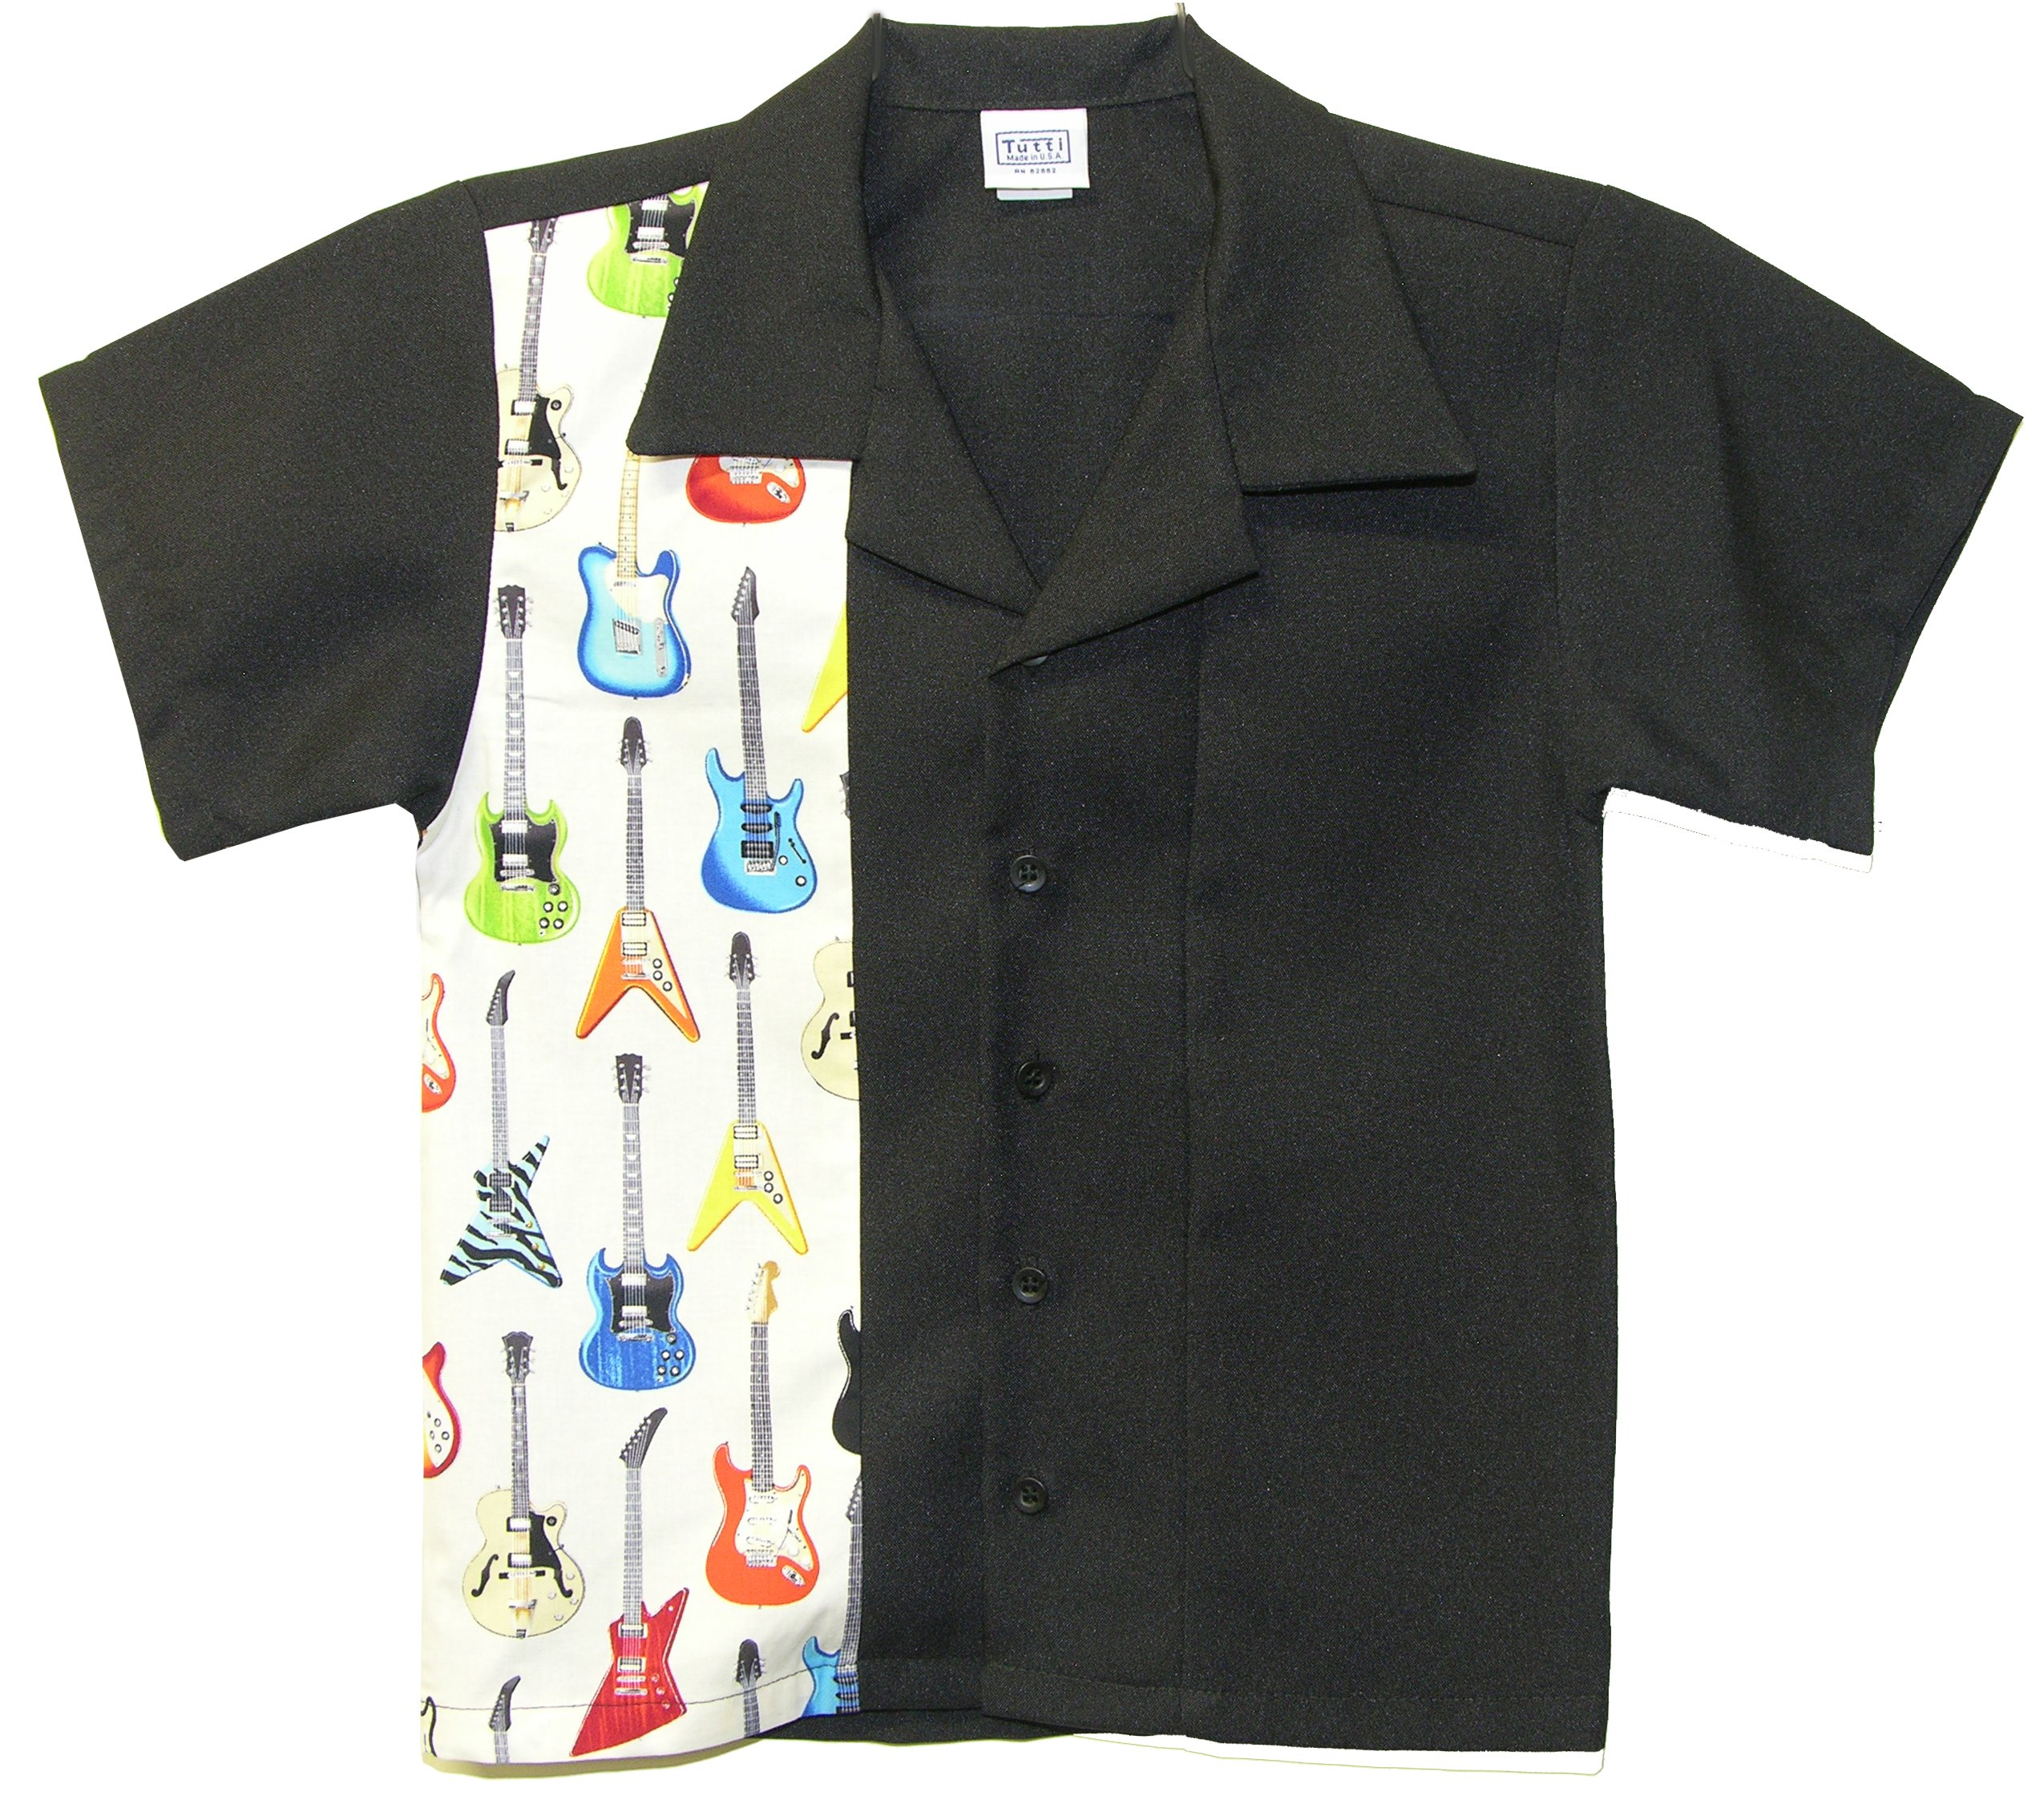 Tutti Kids Bowling Shirt Child Size Electric Guitars Rock n Roll Design (Small 2T-3T Yrs Old)